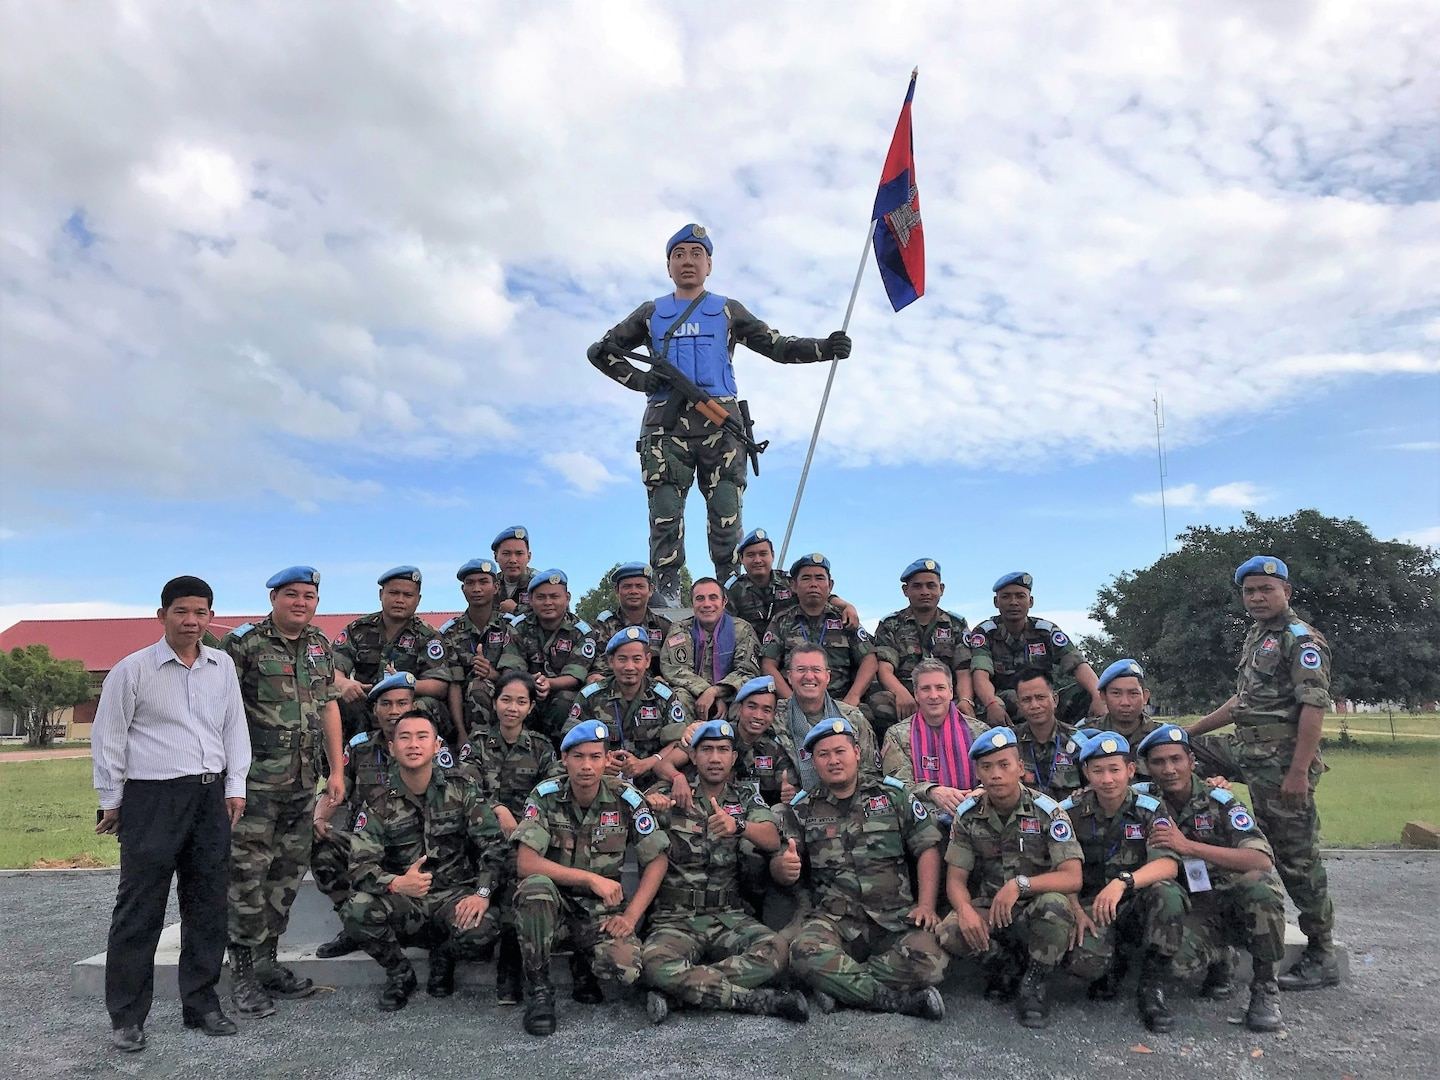 Idaho Guardsmen visit Cambodia to share skills, strengthen ties